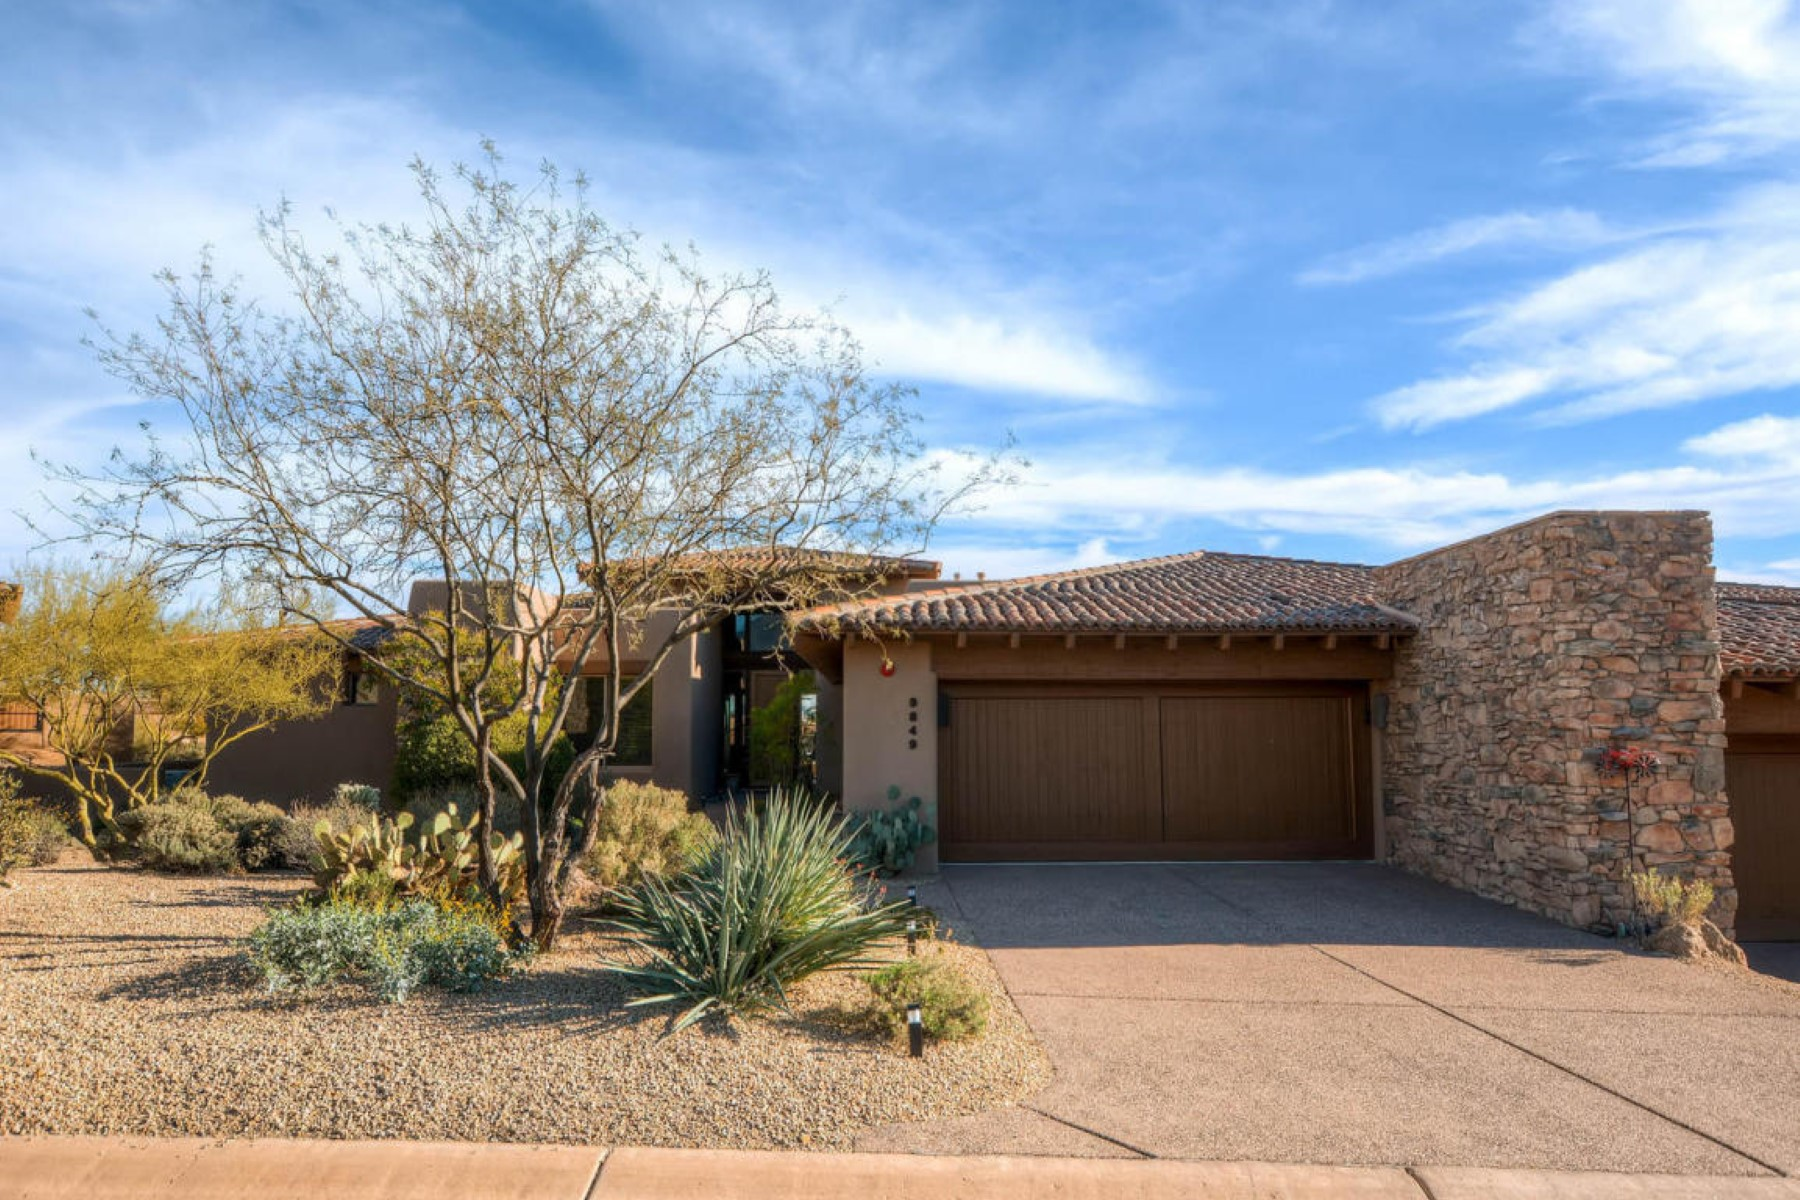 Moradia para Venda às Beautiful South facing Lantana floor plan with views 9849 E Forgotten Hills Dr Scottsdale, Arizona, 85262 Estados Unidos